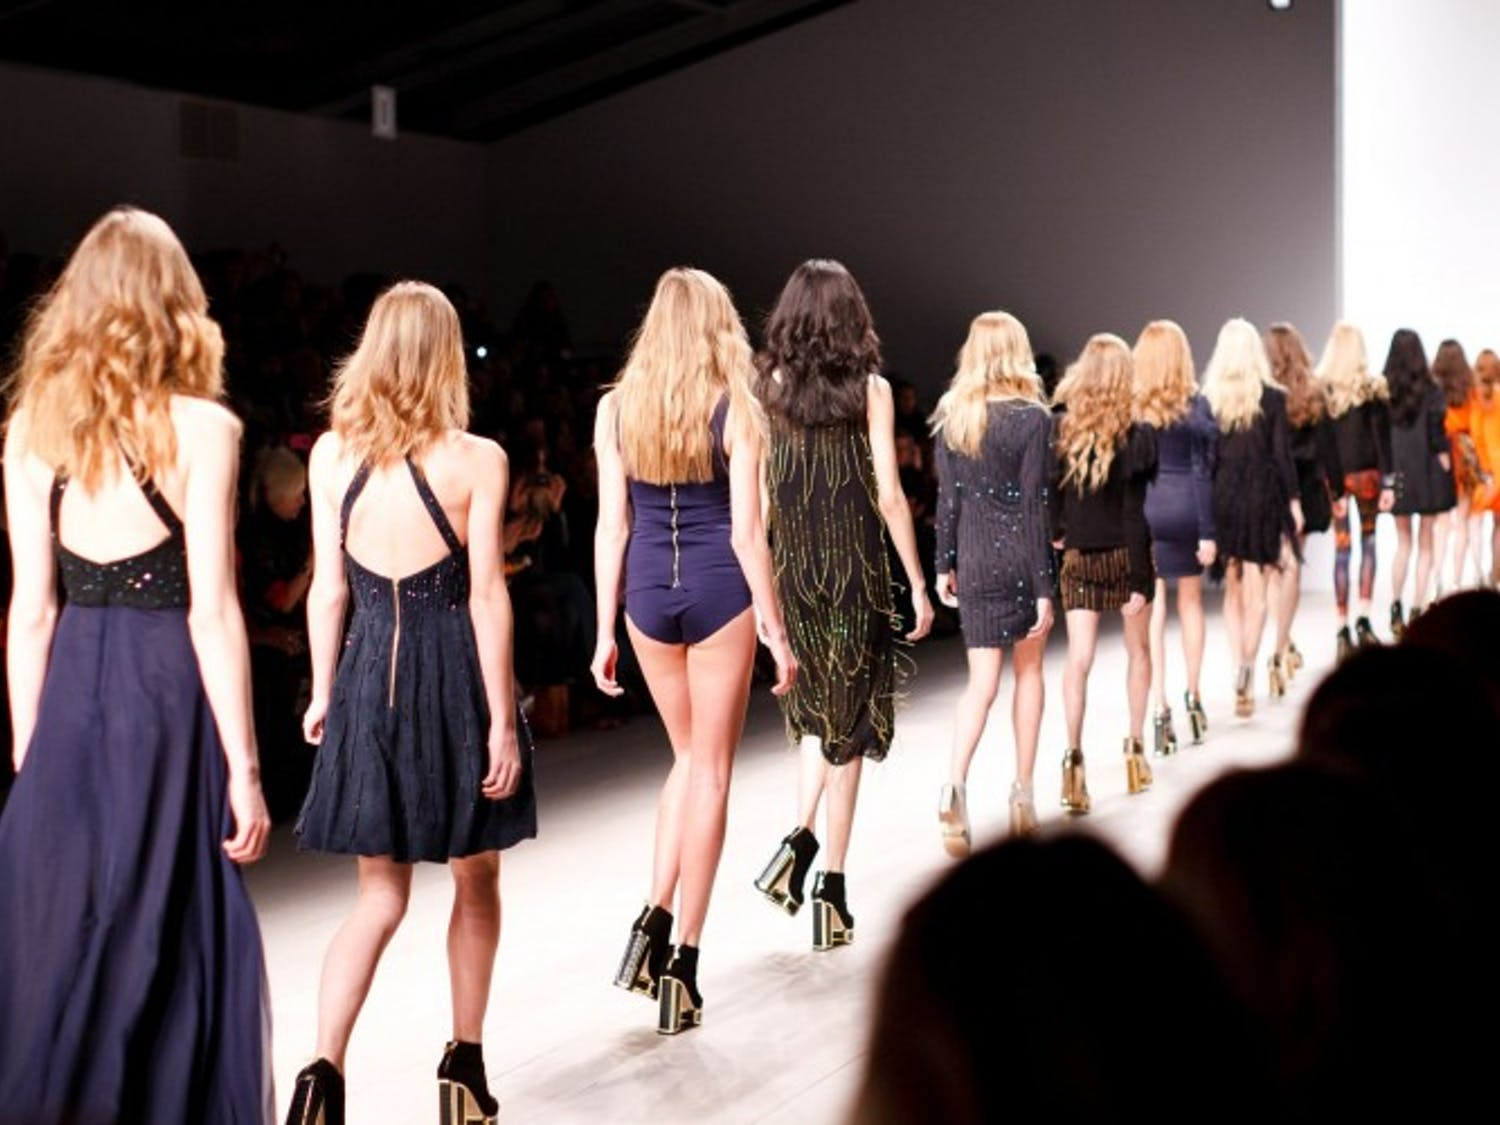 While runways generally set trends, social movements can also have considerable influence.